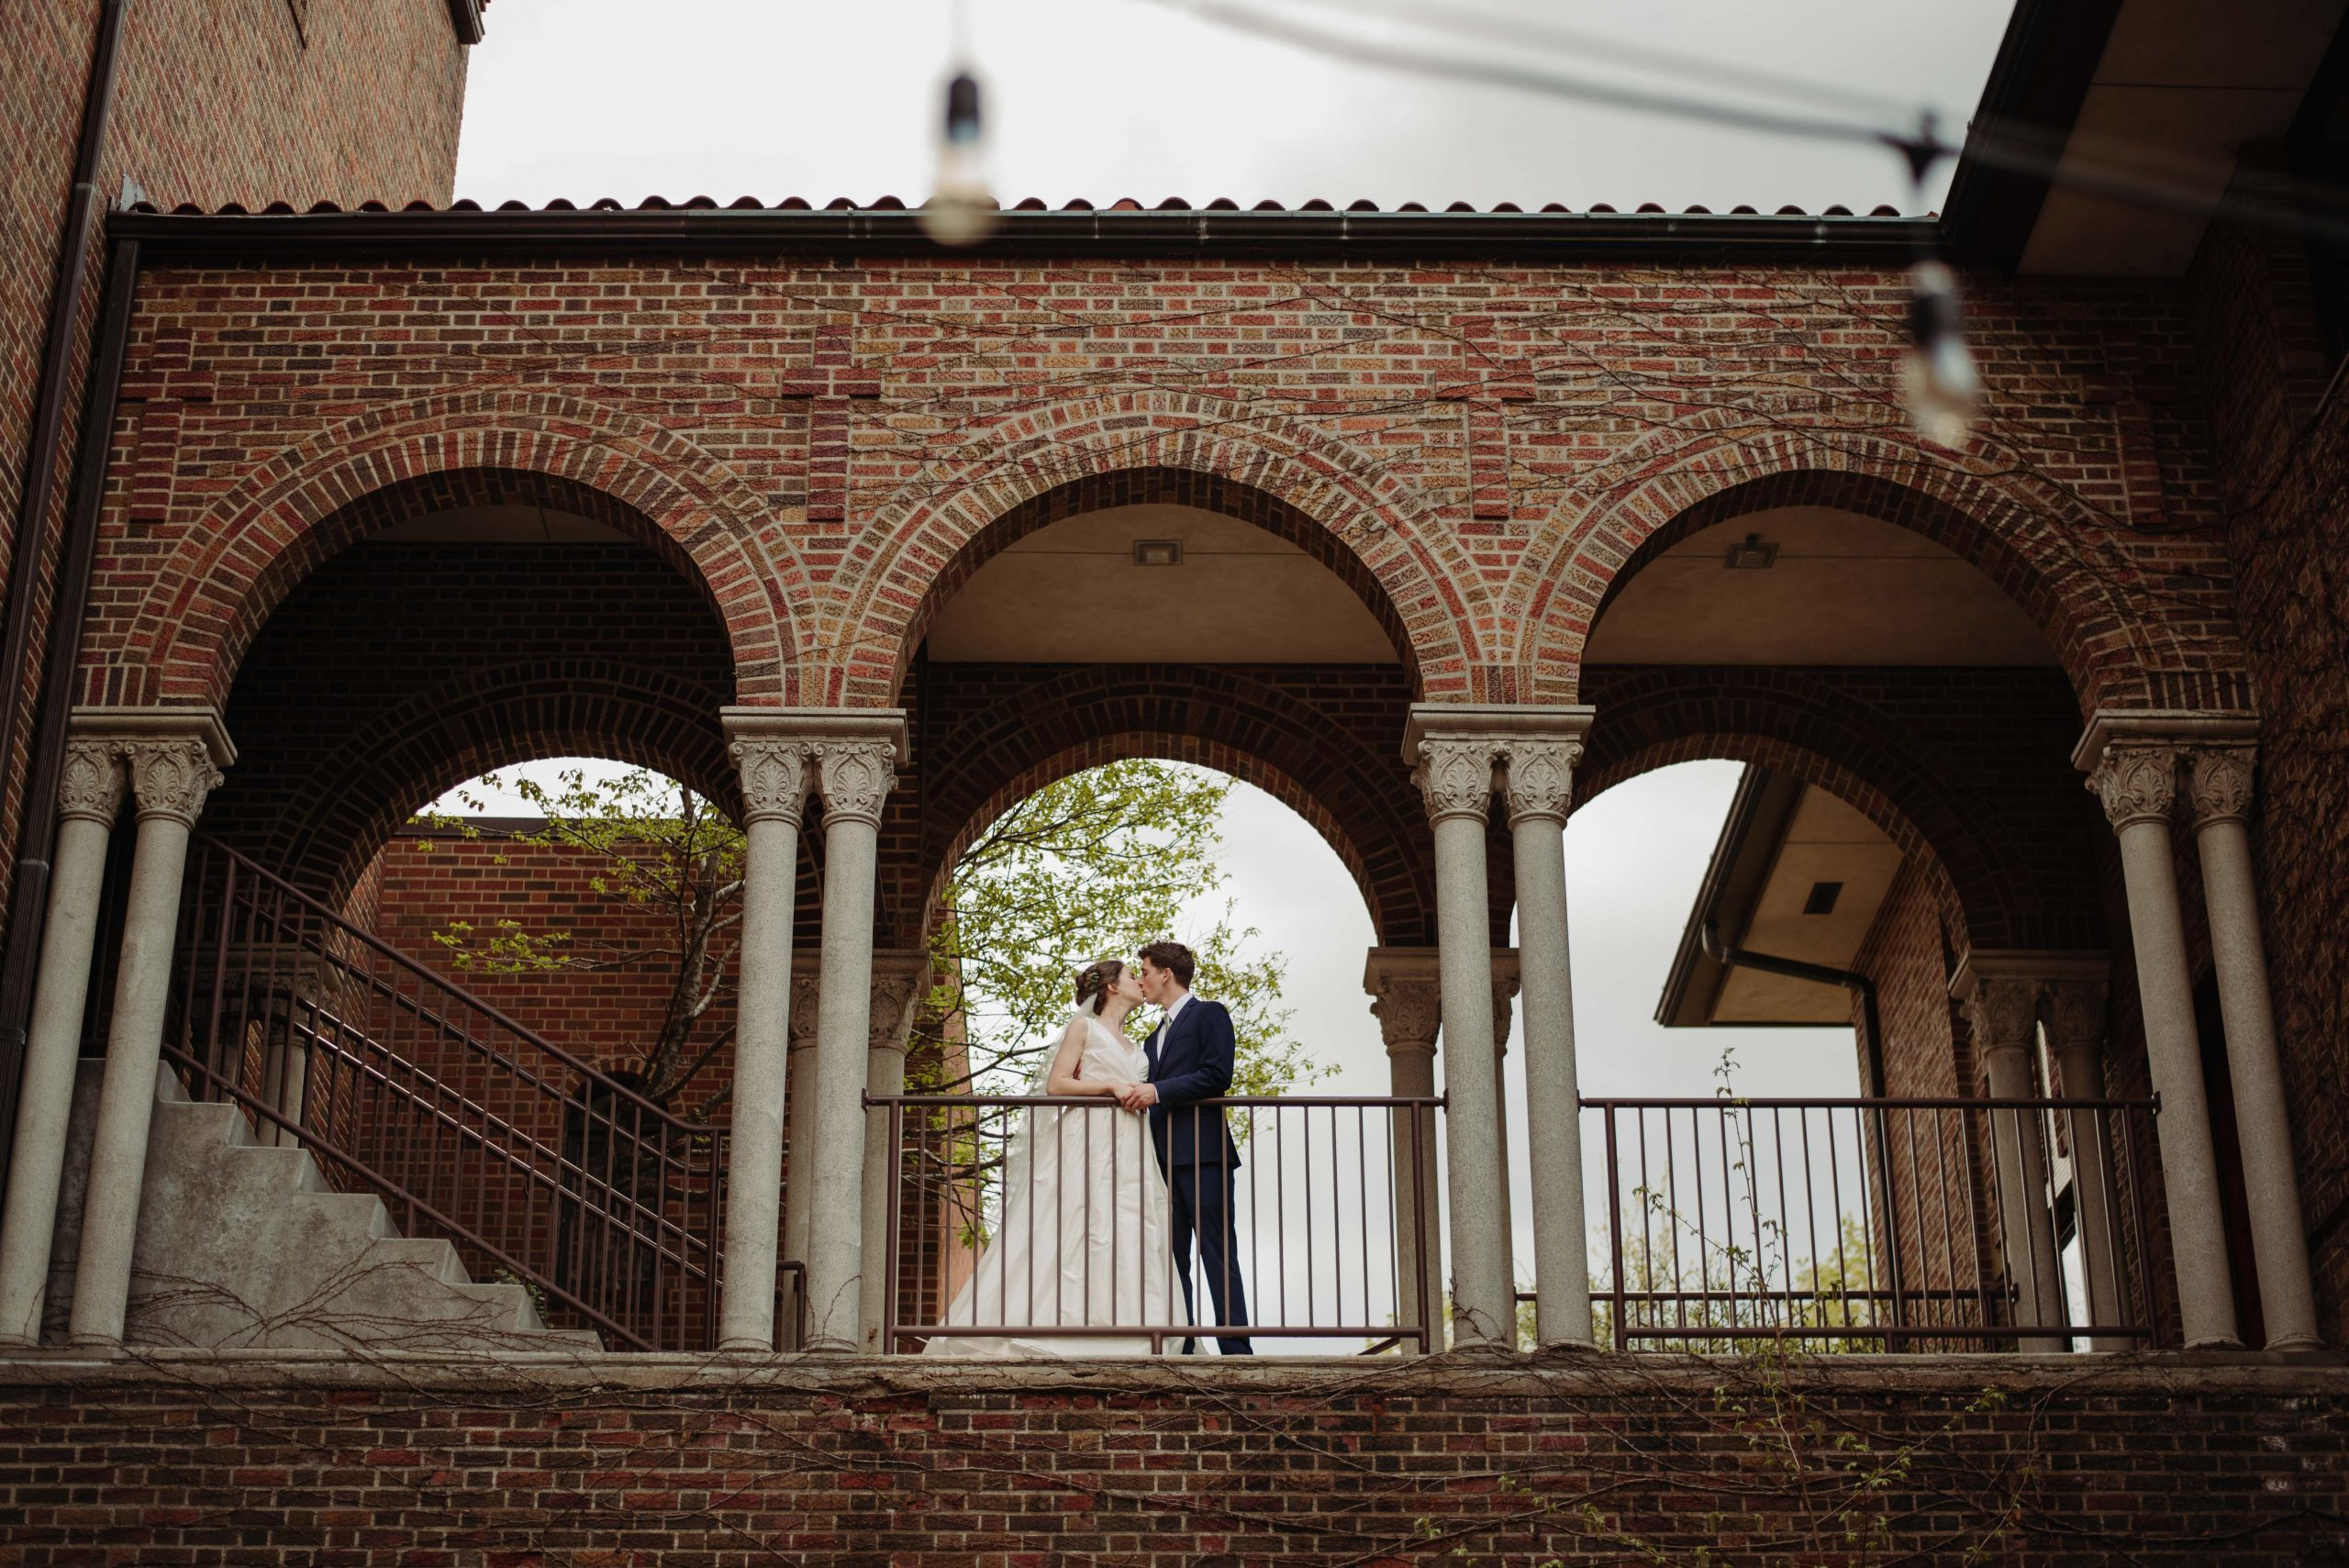 bride and groom in romantic archway minneapolis minnesota wedding